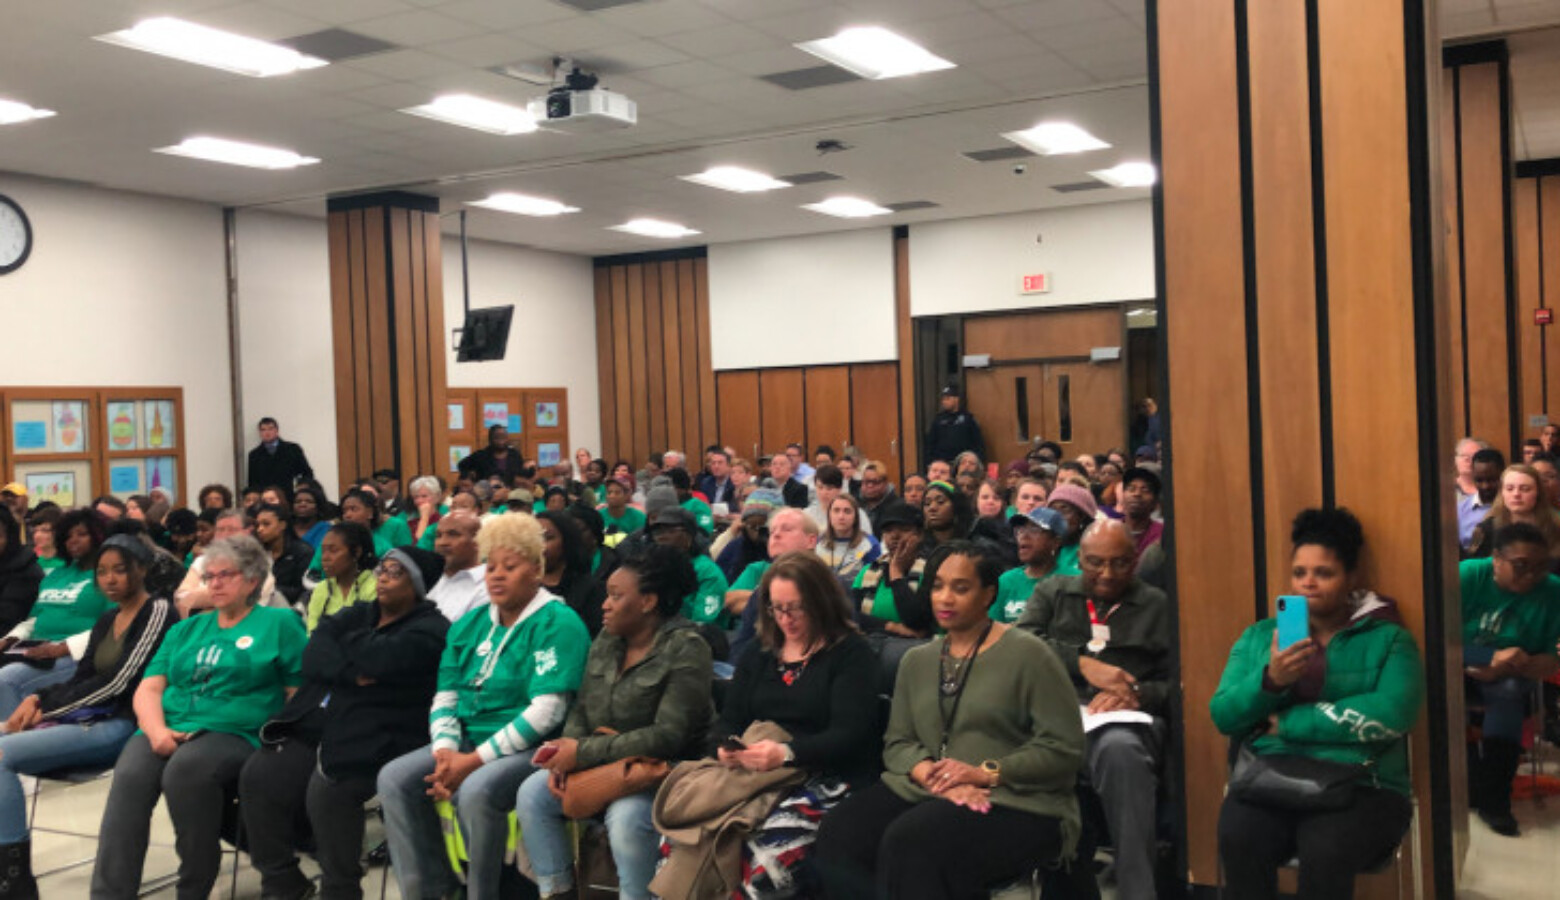 A packed room for a meeting of the Indianapolis Public Schools Board of Commissioners in January 2020.